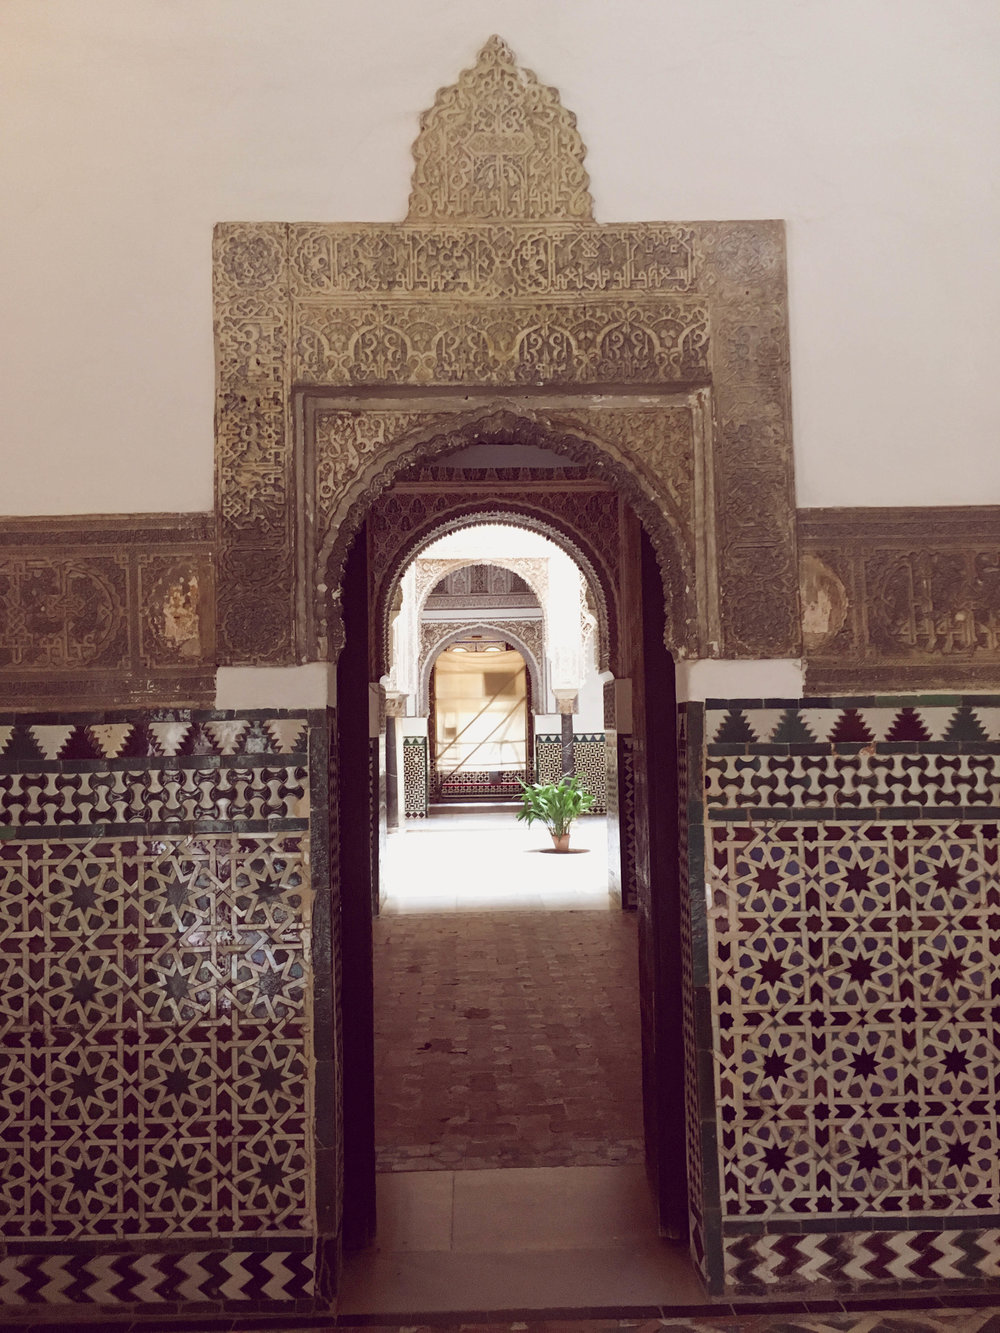 ROYAL ALCAZAR OF SEVILLE